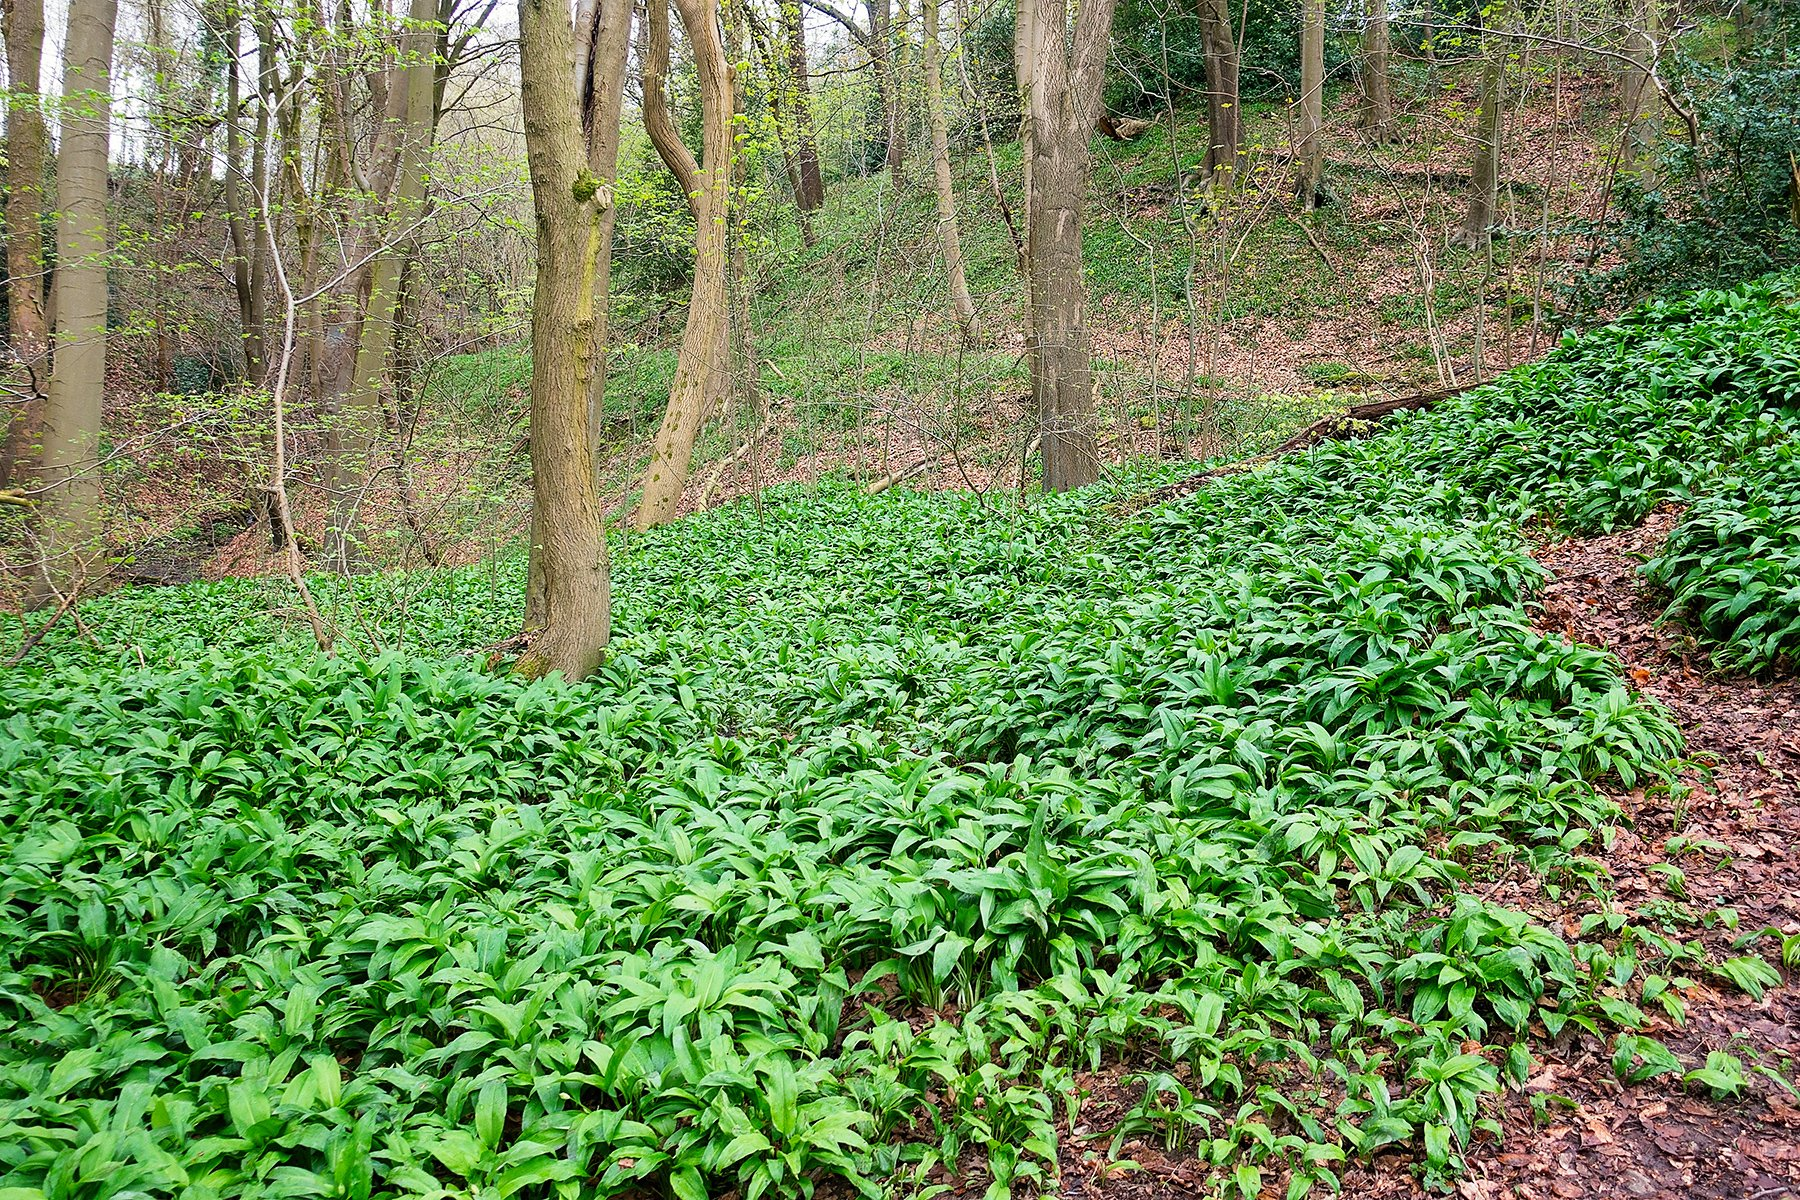 Wild garlic at Linacre reservoirs near Chesterfield